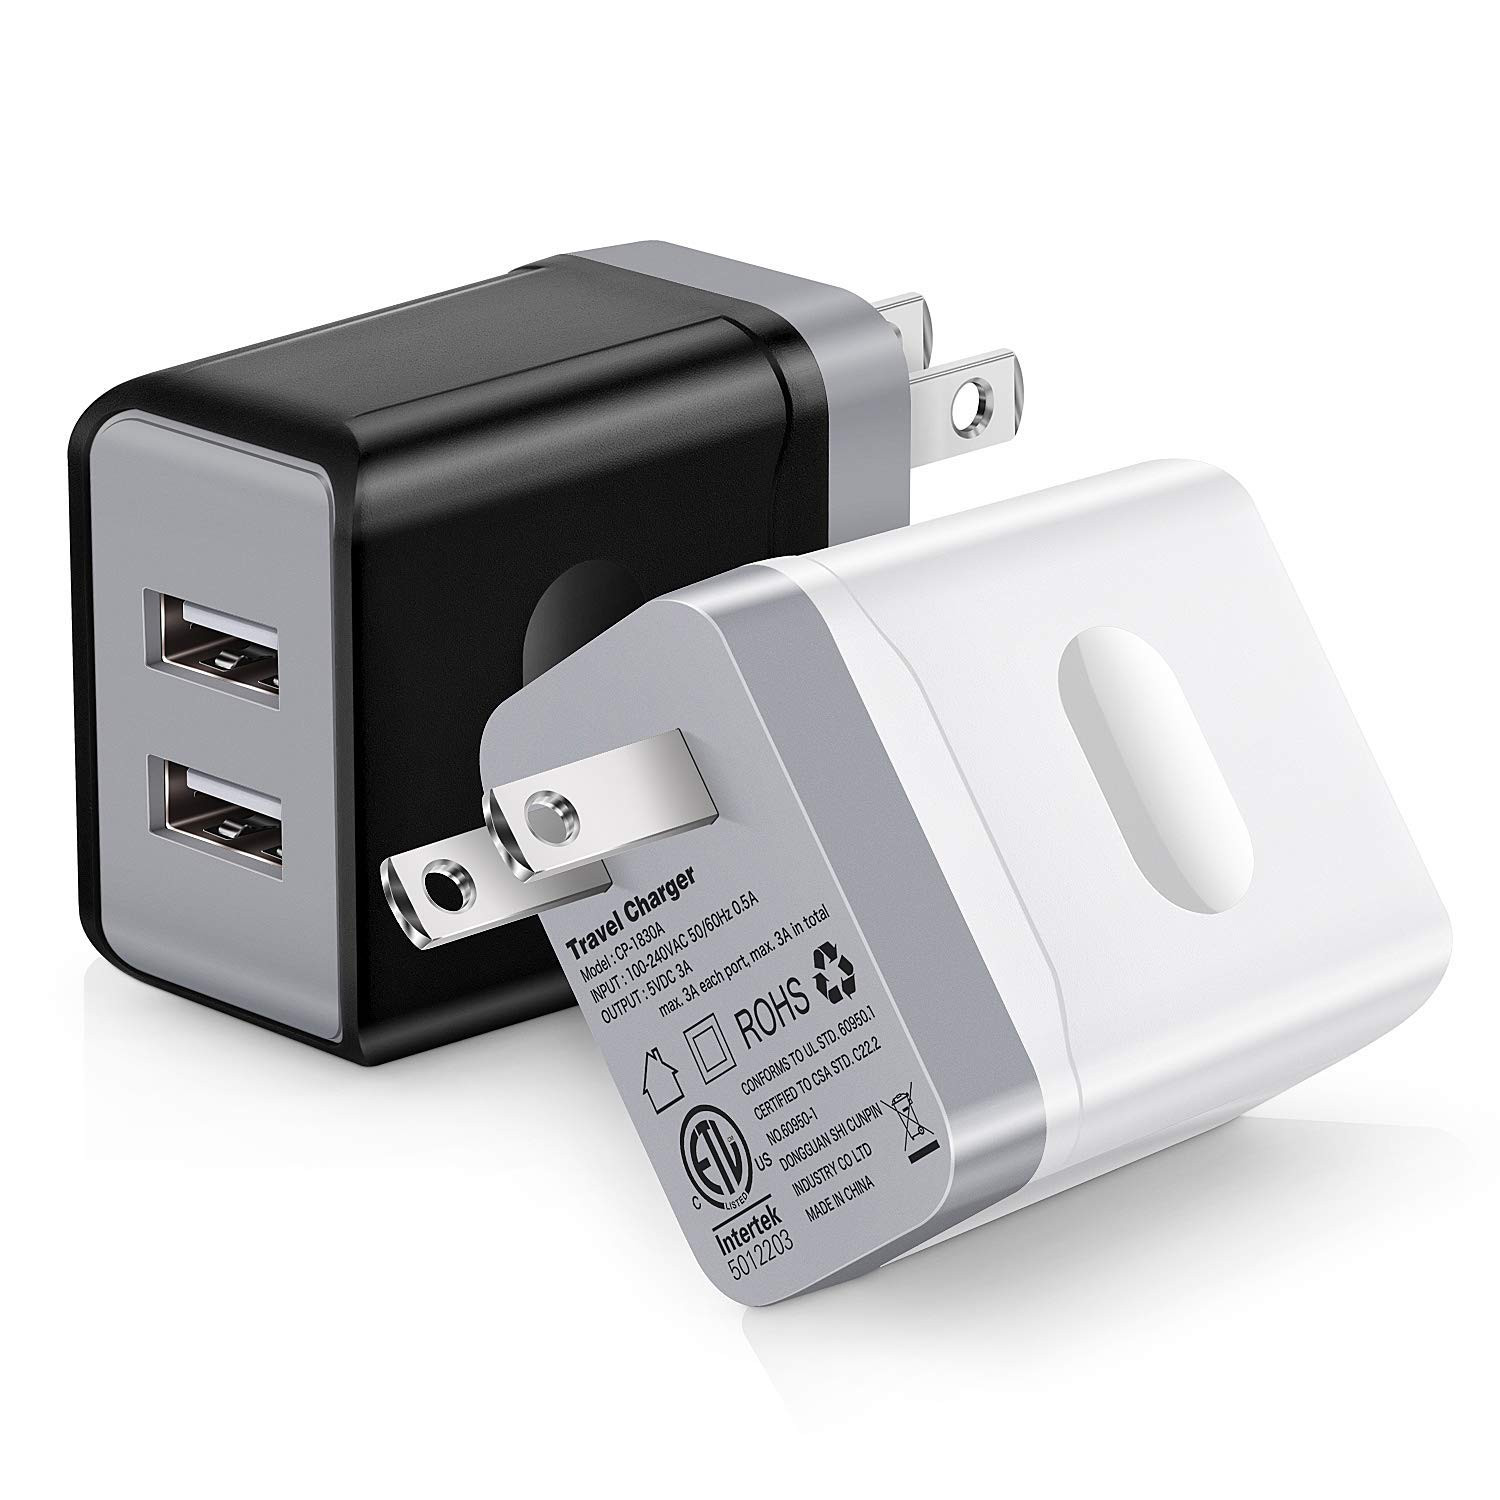 Wall Plug High Speed Adapter Charger